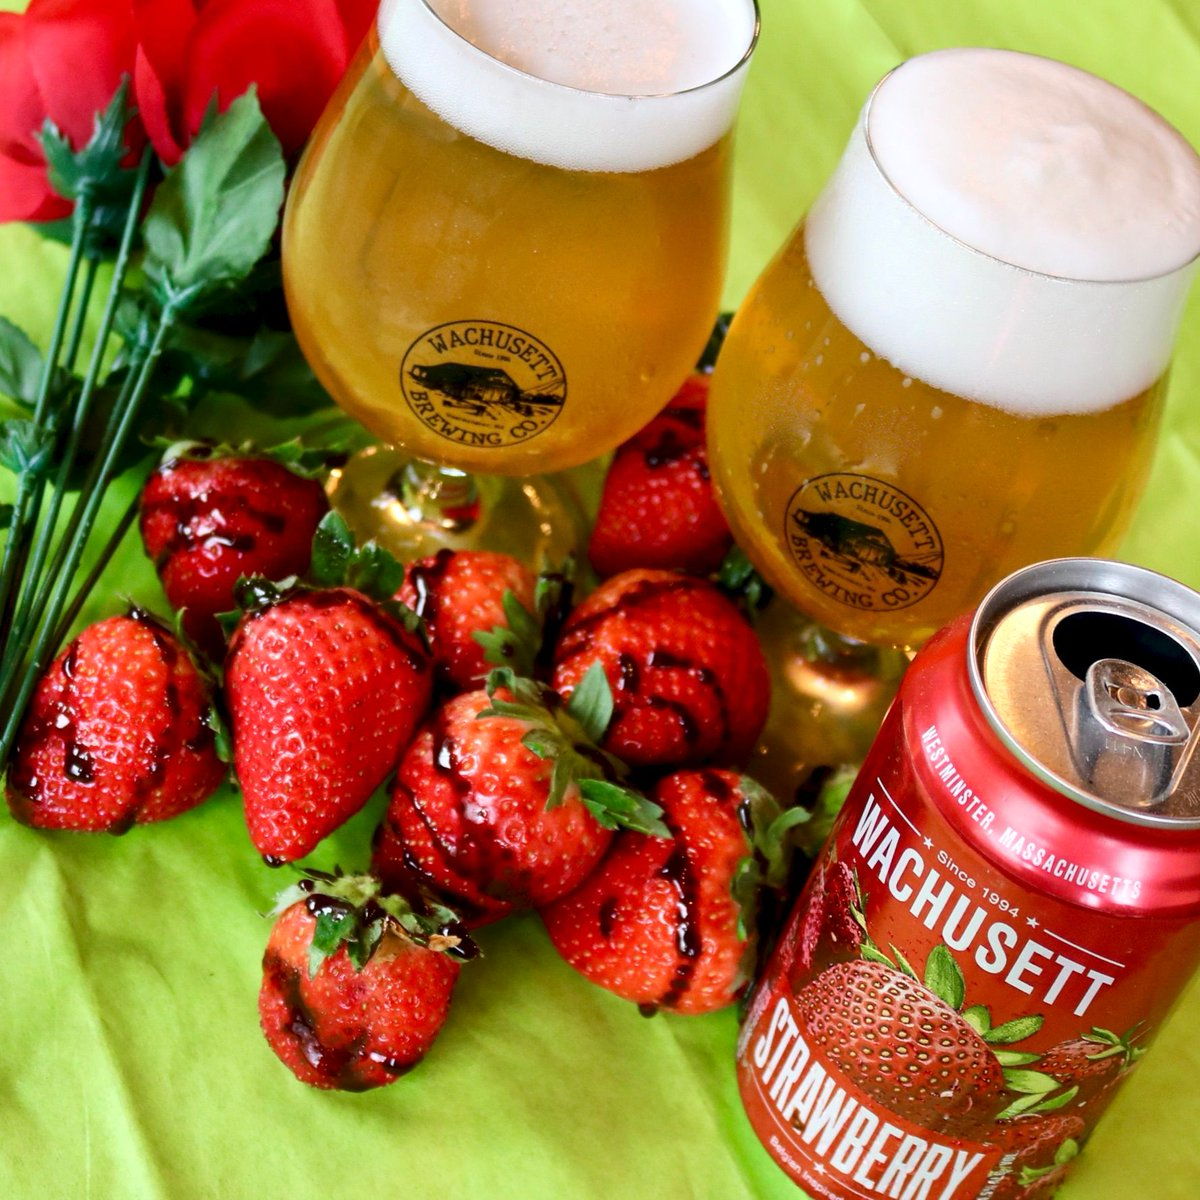 Need the ideal pairing for Valentine's Day? Get your sweetheart chocolate-covered strawberries and the perfect complement, a 12-pack of our luscious Strawberry Ale.